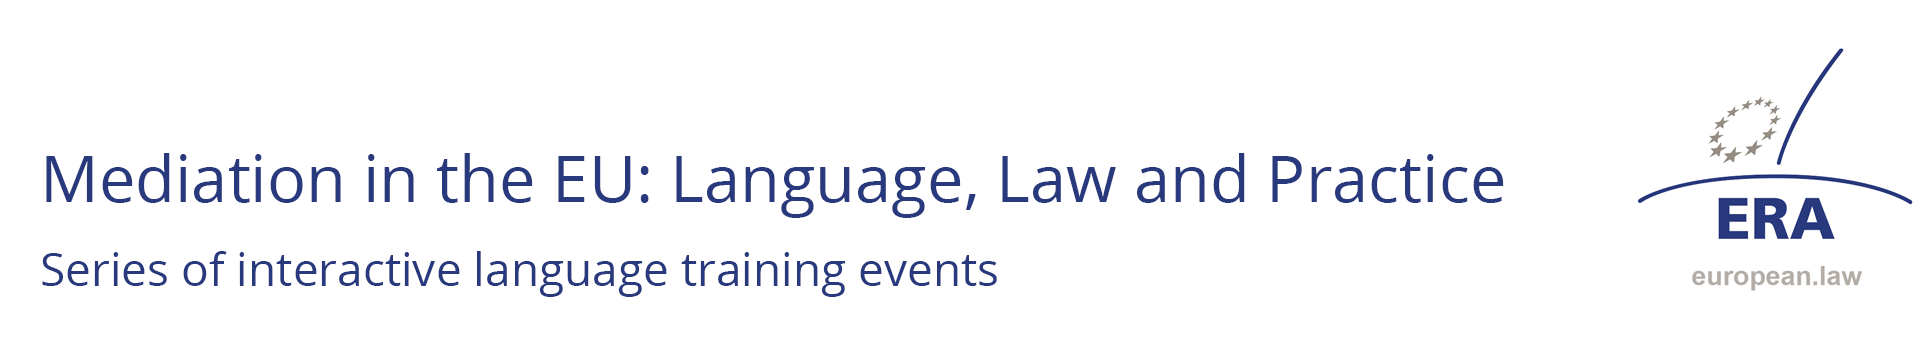 Mediation in the EU: Language, Law and Practice